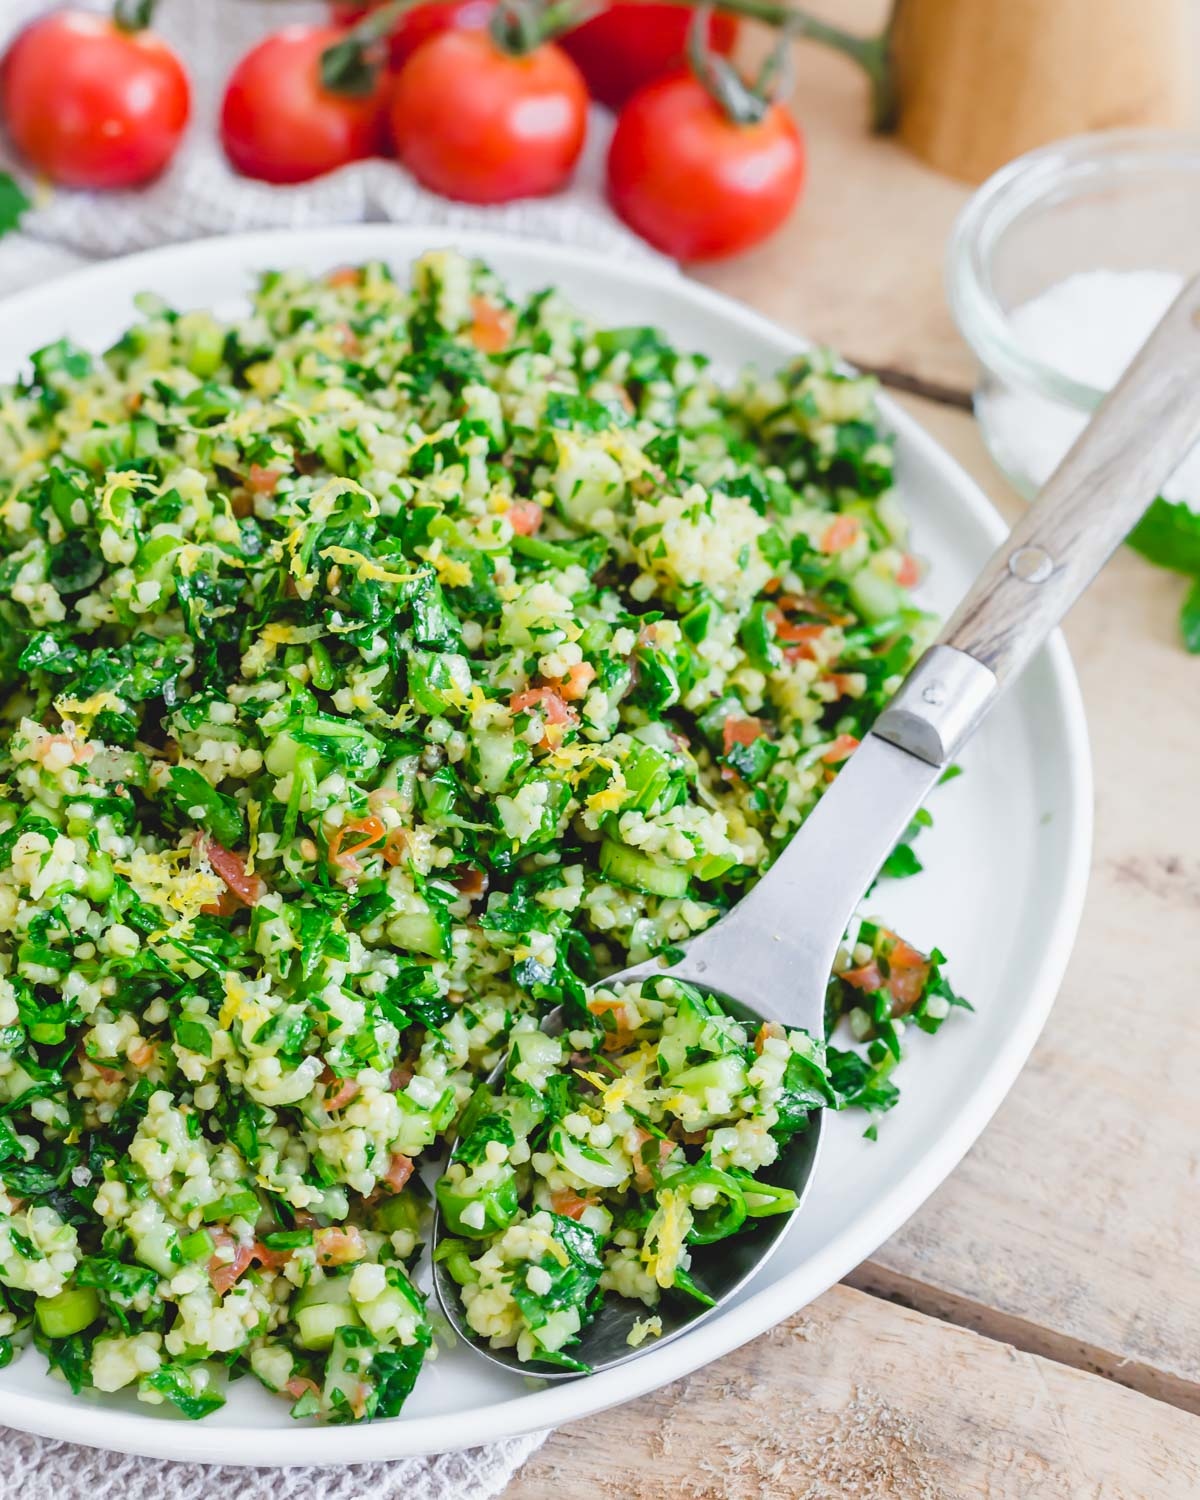 Gluten-free organic tabbouleh recipe made with millet on a plate with a serving spoon.